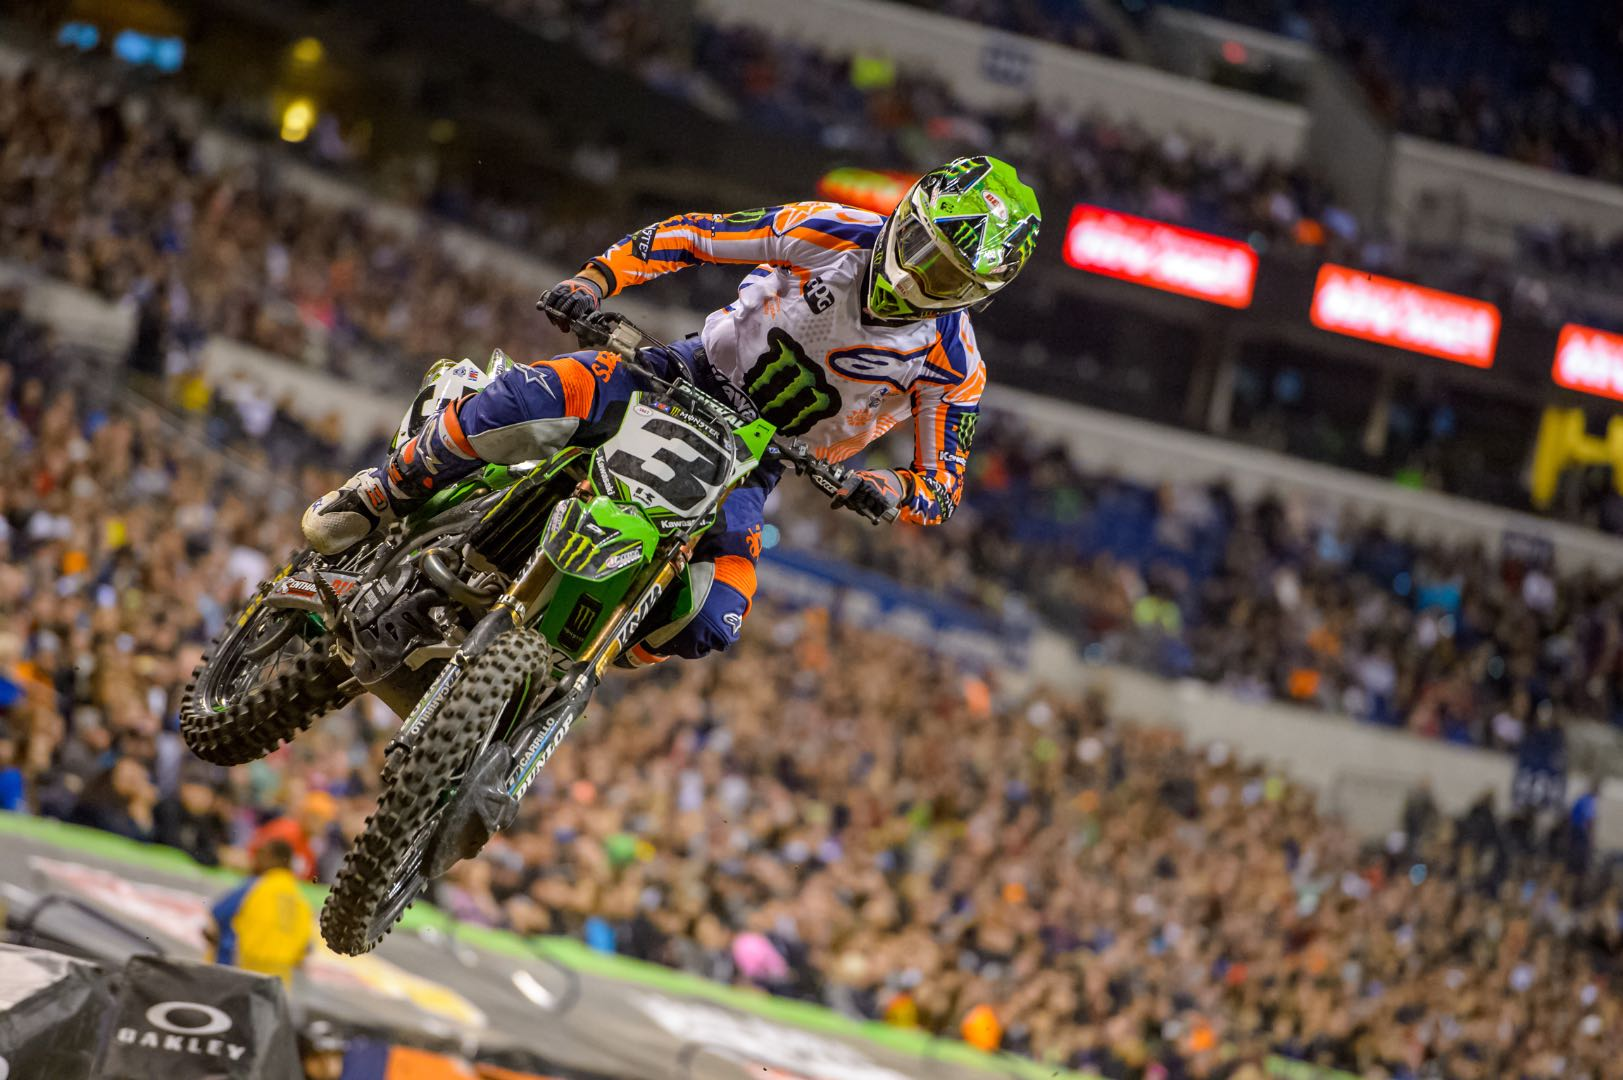 2018 Foxborough Supercross Preview Kawasaki's Eli Tomac